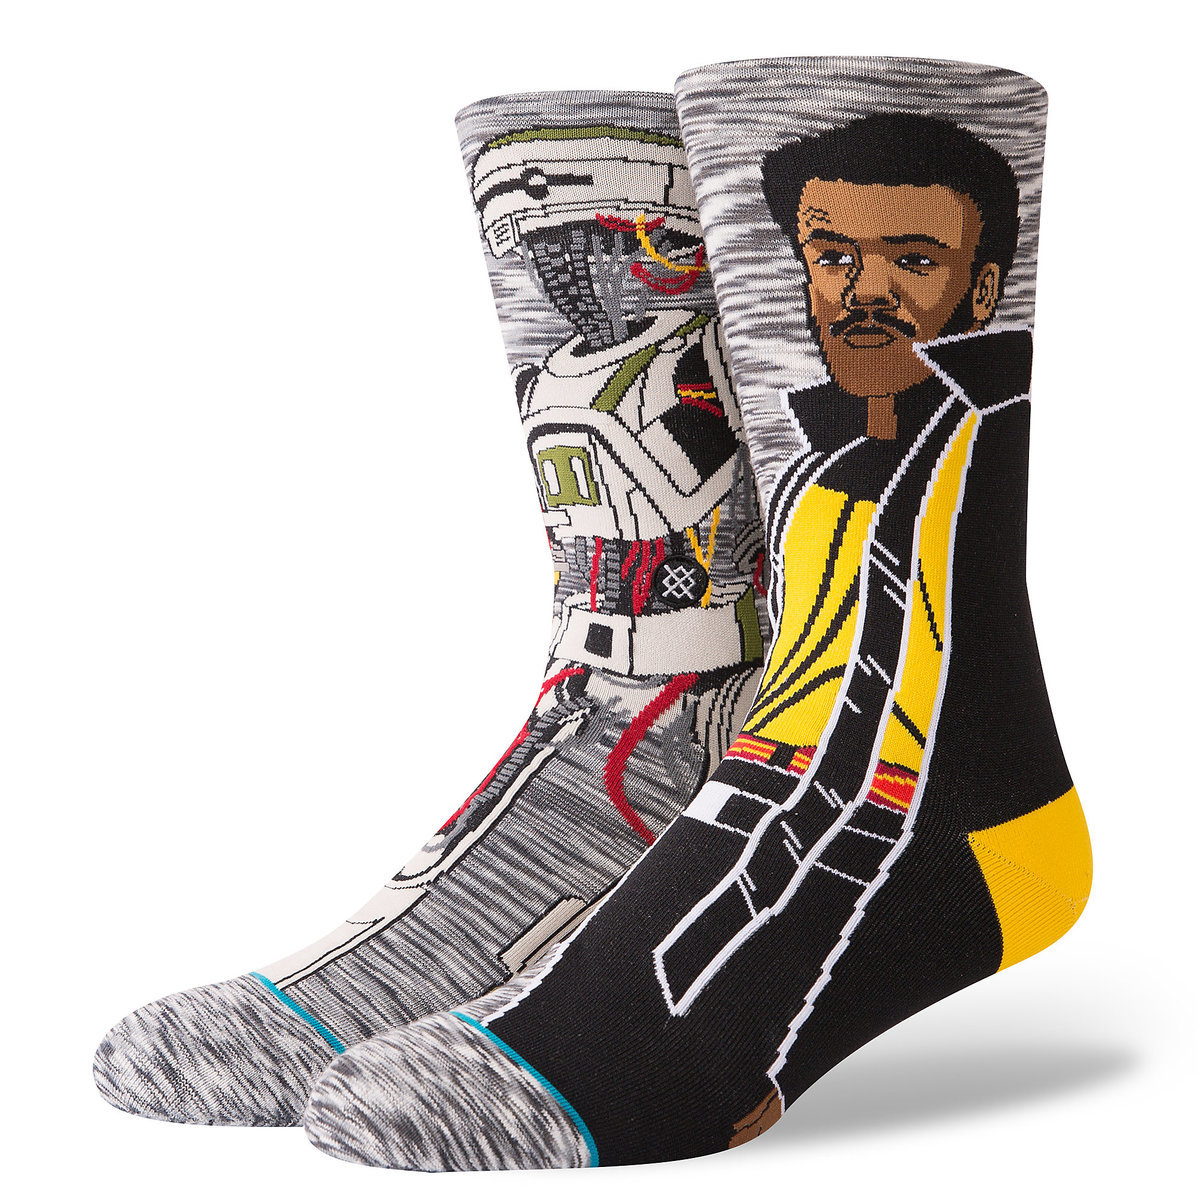 1b2a66effb54 Product Image of Lando Calrissian and L3-37 Socks by Stance for Adults -  Solo